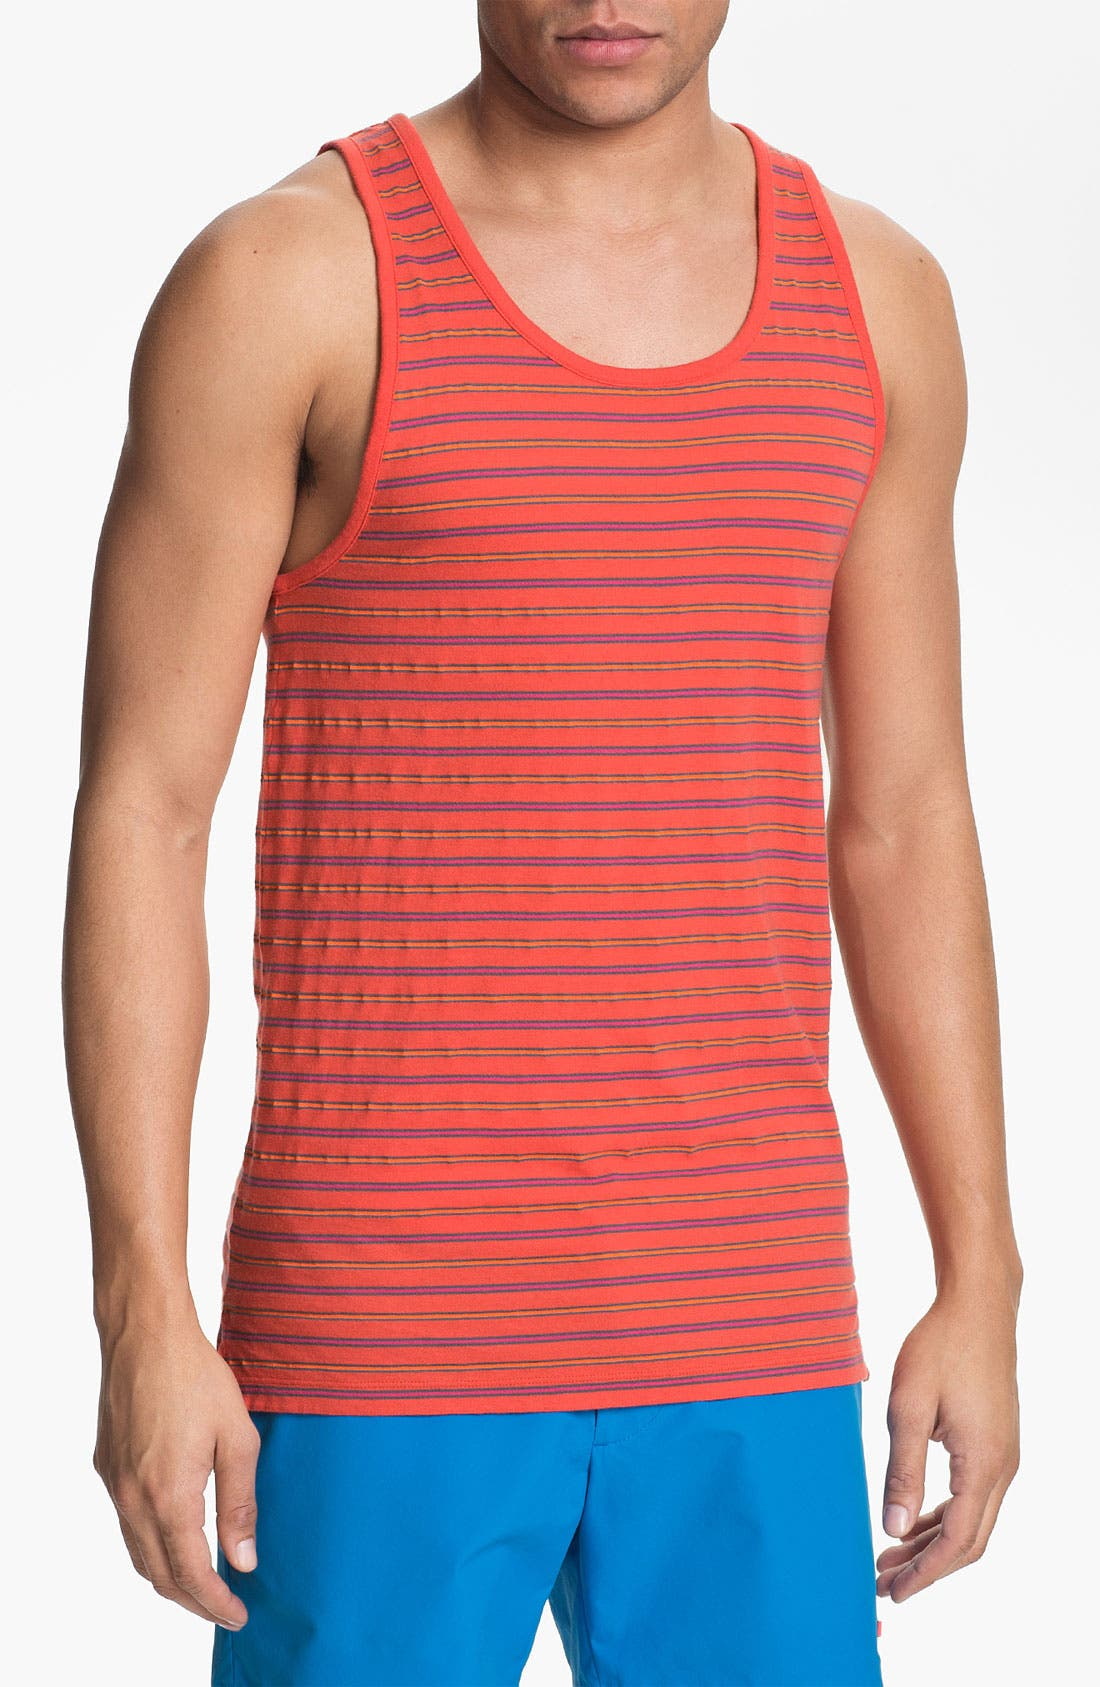 Alternate Image 1 Selected - MARC BY MARC JACOBS 'Richard' Stripe Tank Top